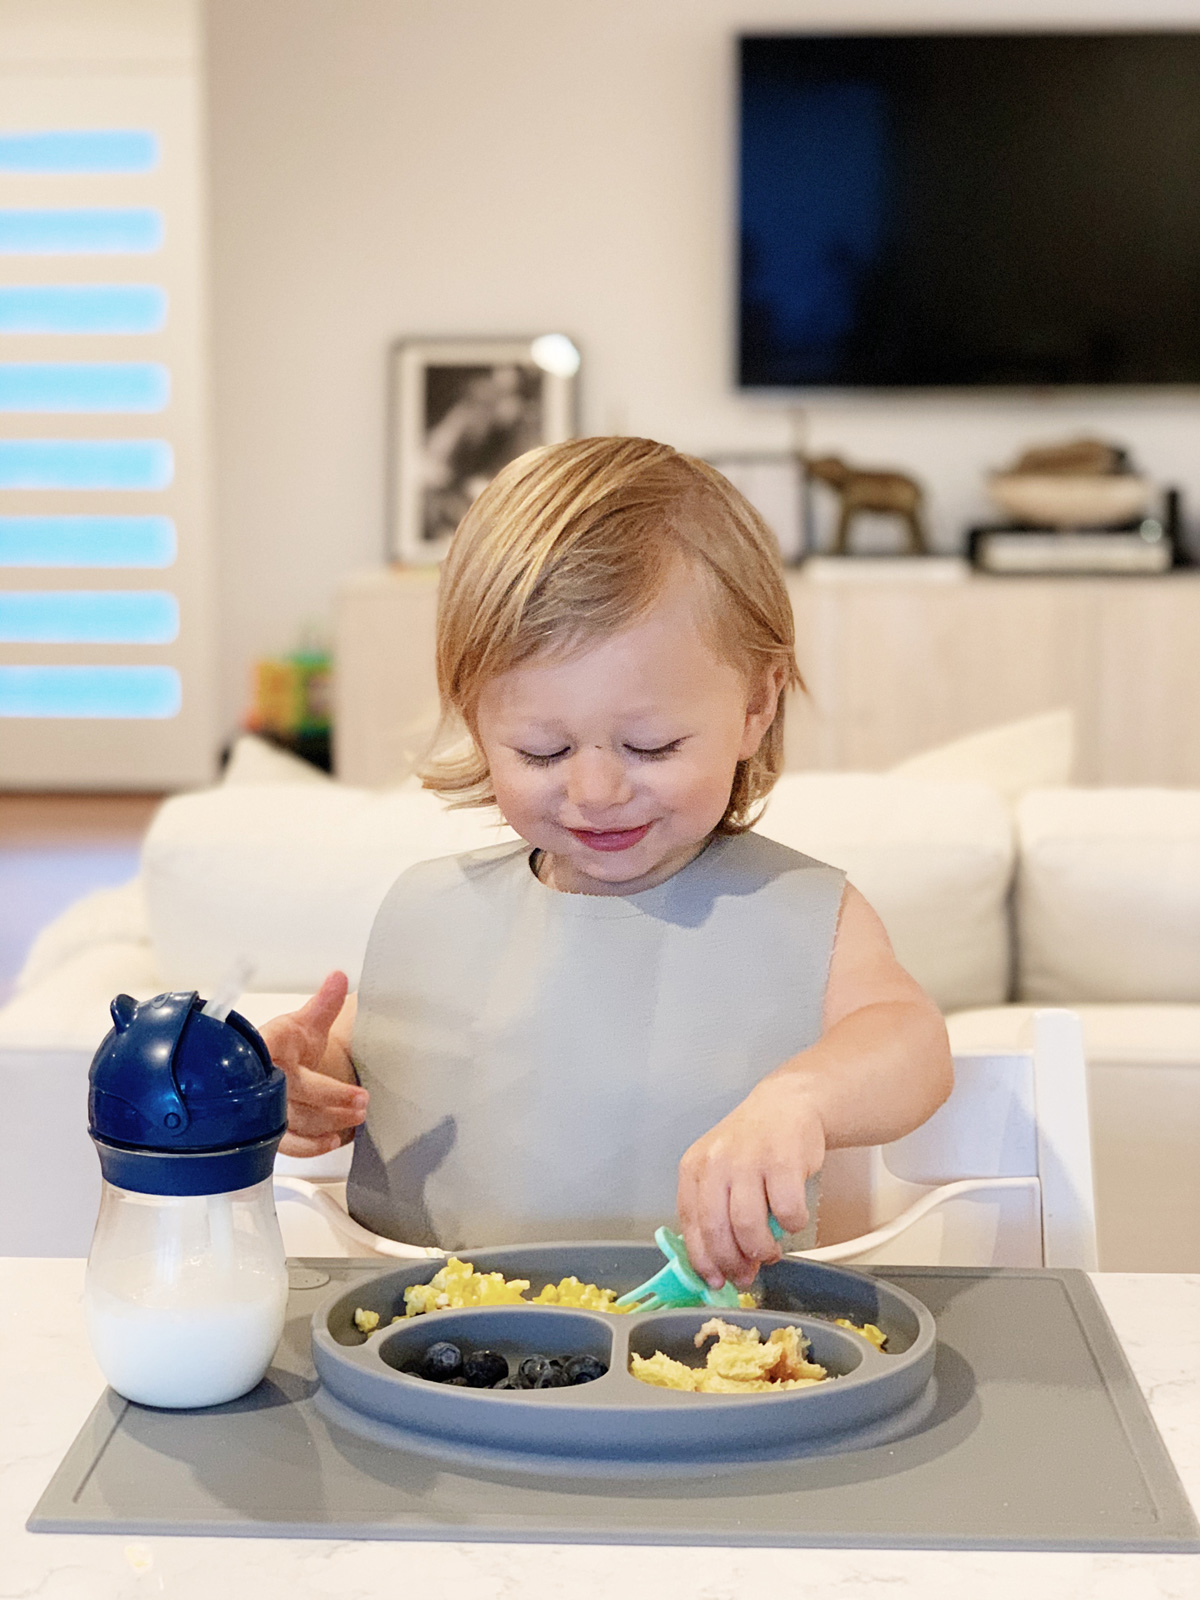 Toddler Feeding Essentials: 18 months featuring stokke tripp trapp highchair, ezpz mat, gathre bib, and oxo tot straw cup for eatsleepwear kimberly lapides